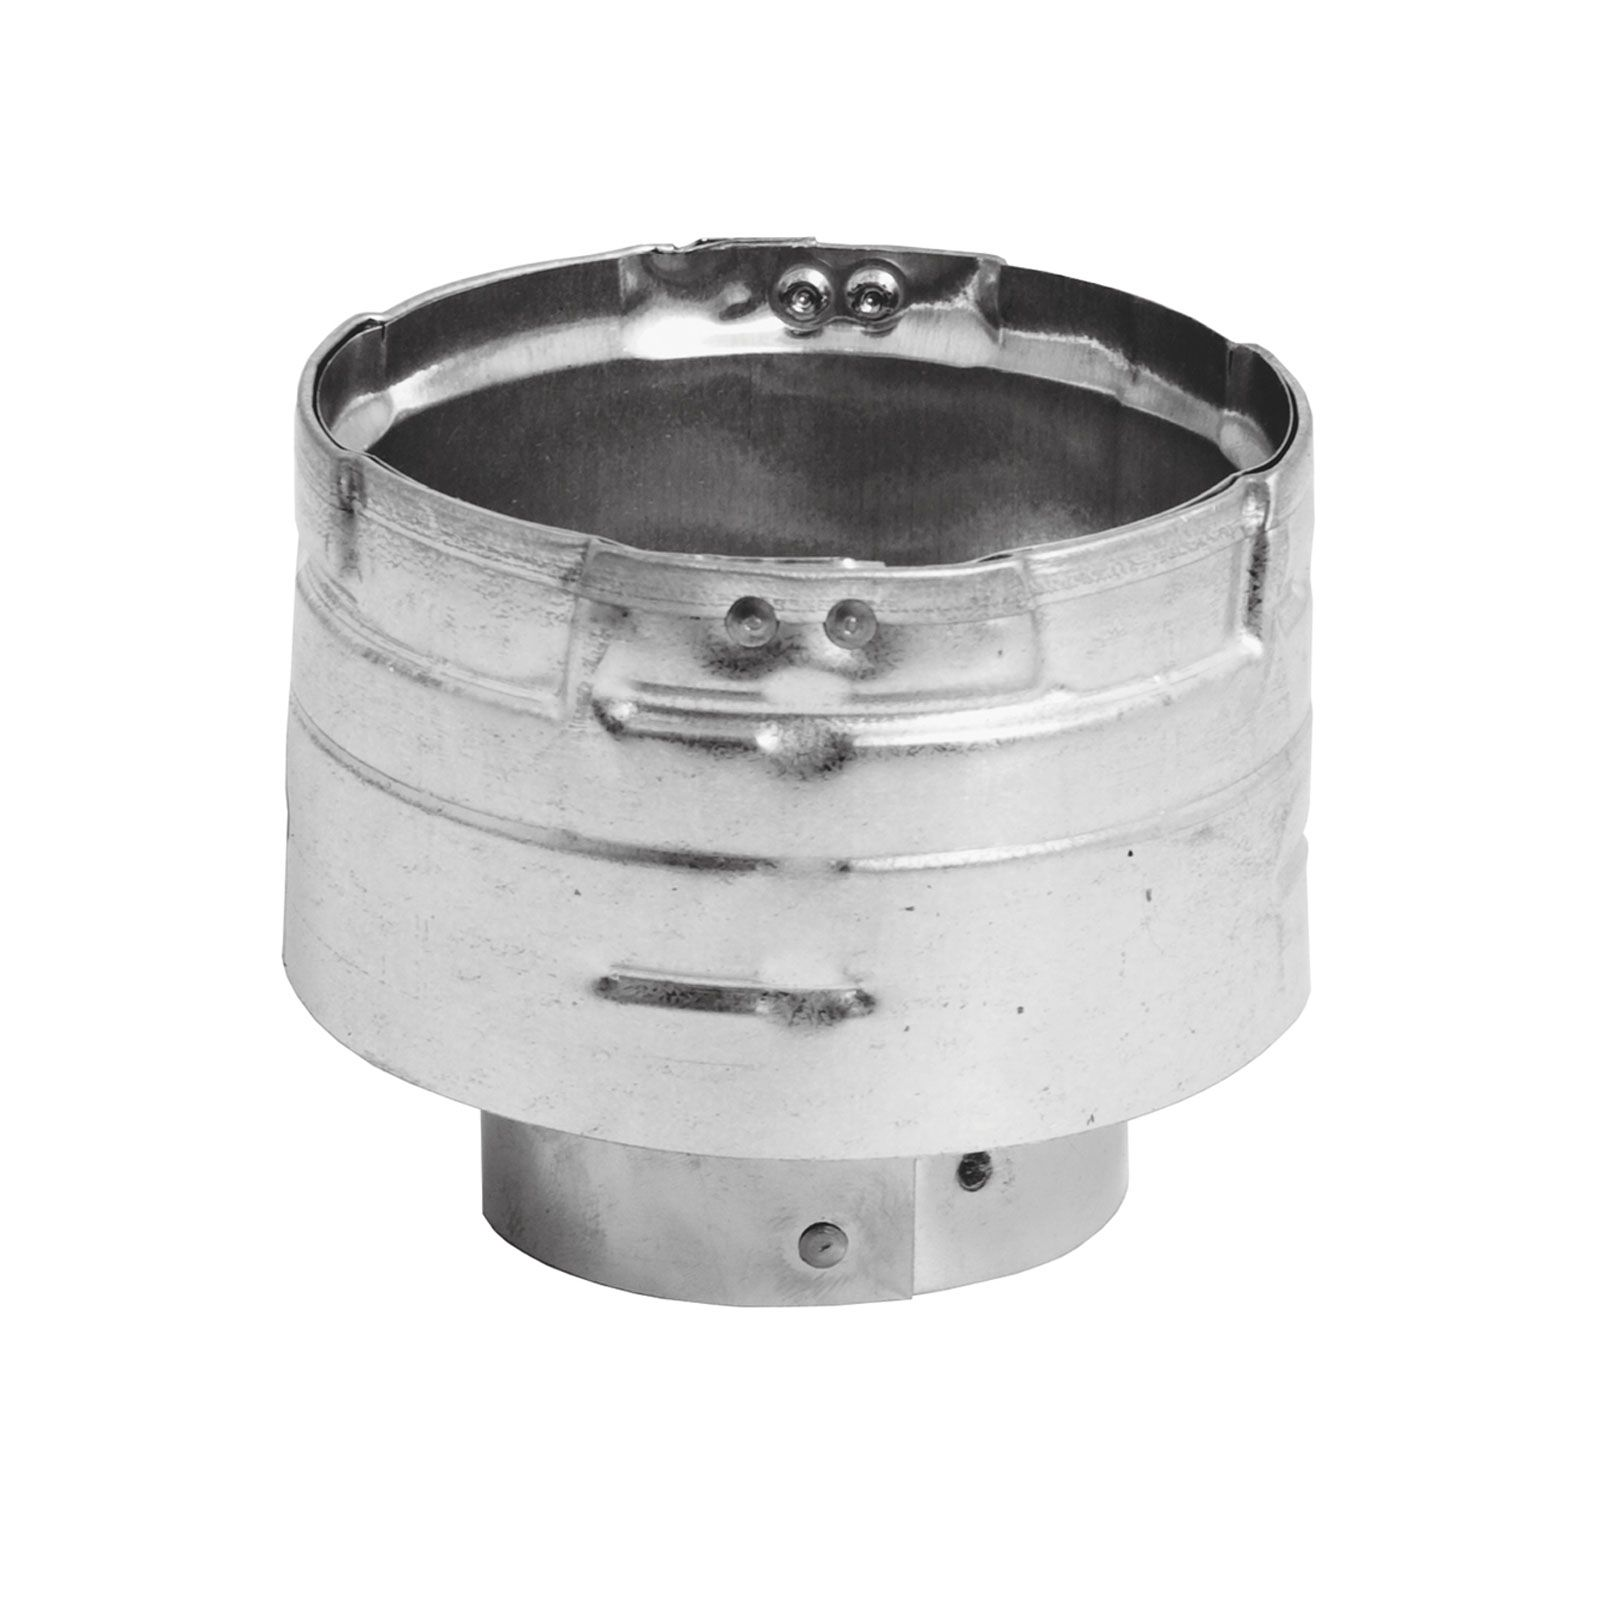 DuraVent 3SWRRA4 - Draft Hood Connector for Rheem Rudd Equipment